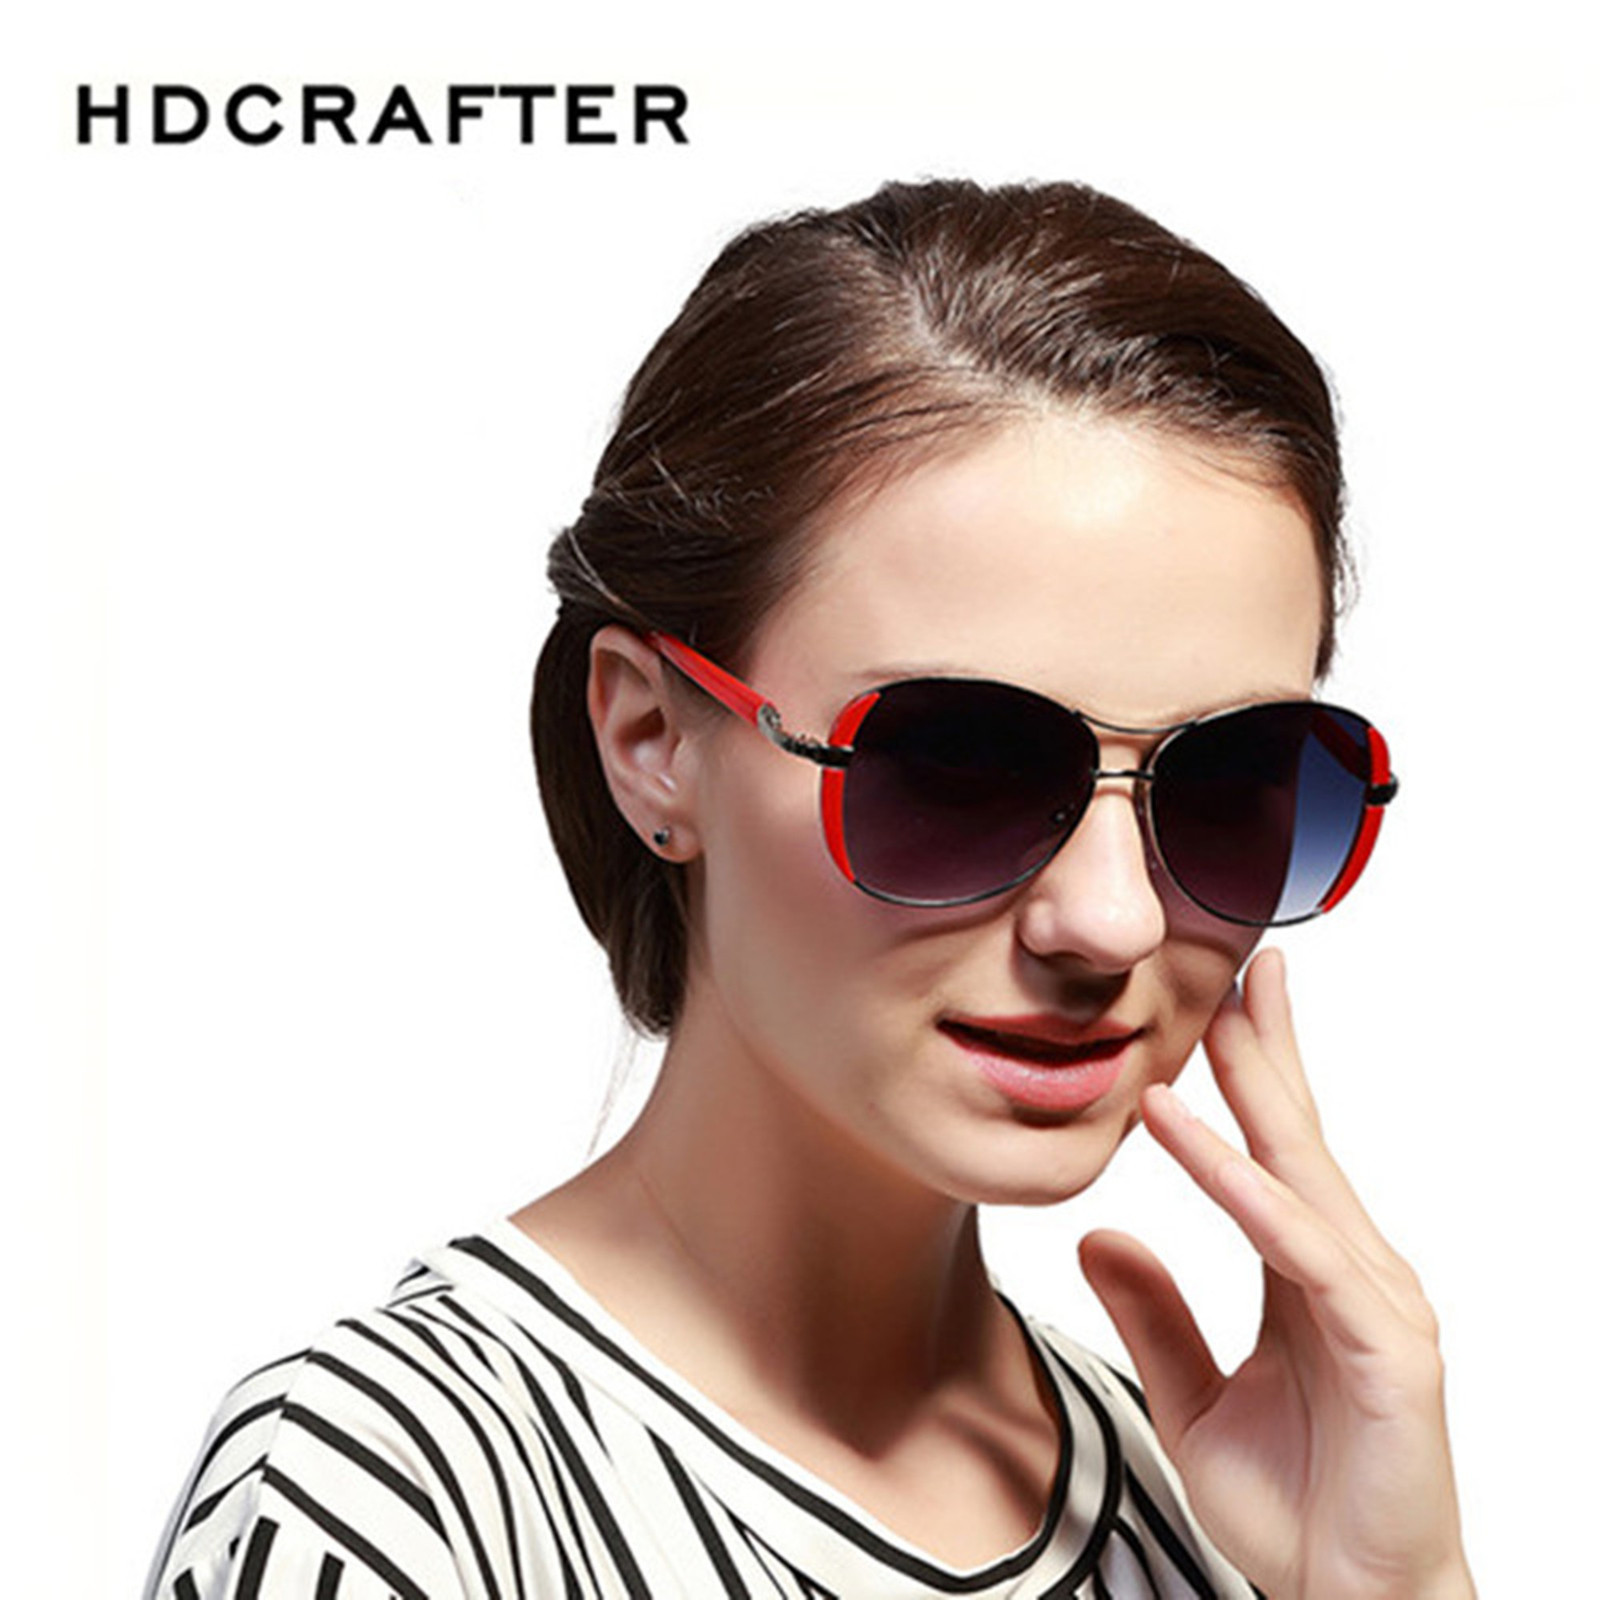 HDCRAFTER HD9031 Fashion Oval Luxury Outdoor Lady's sunglasses